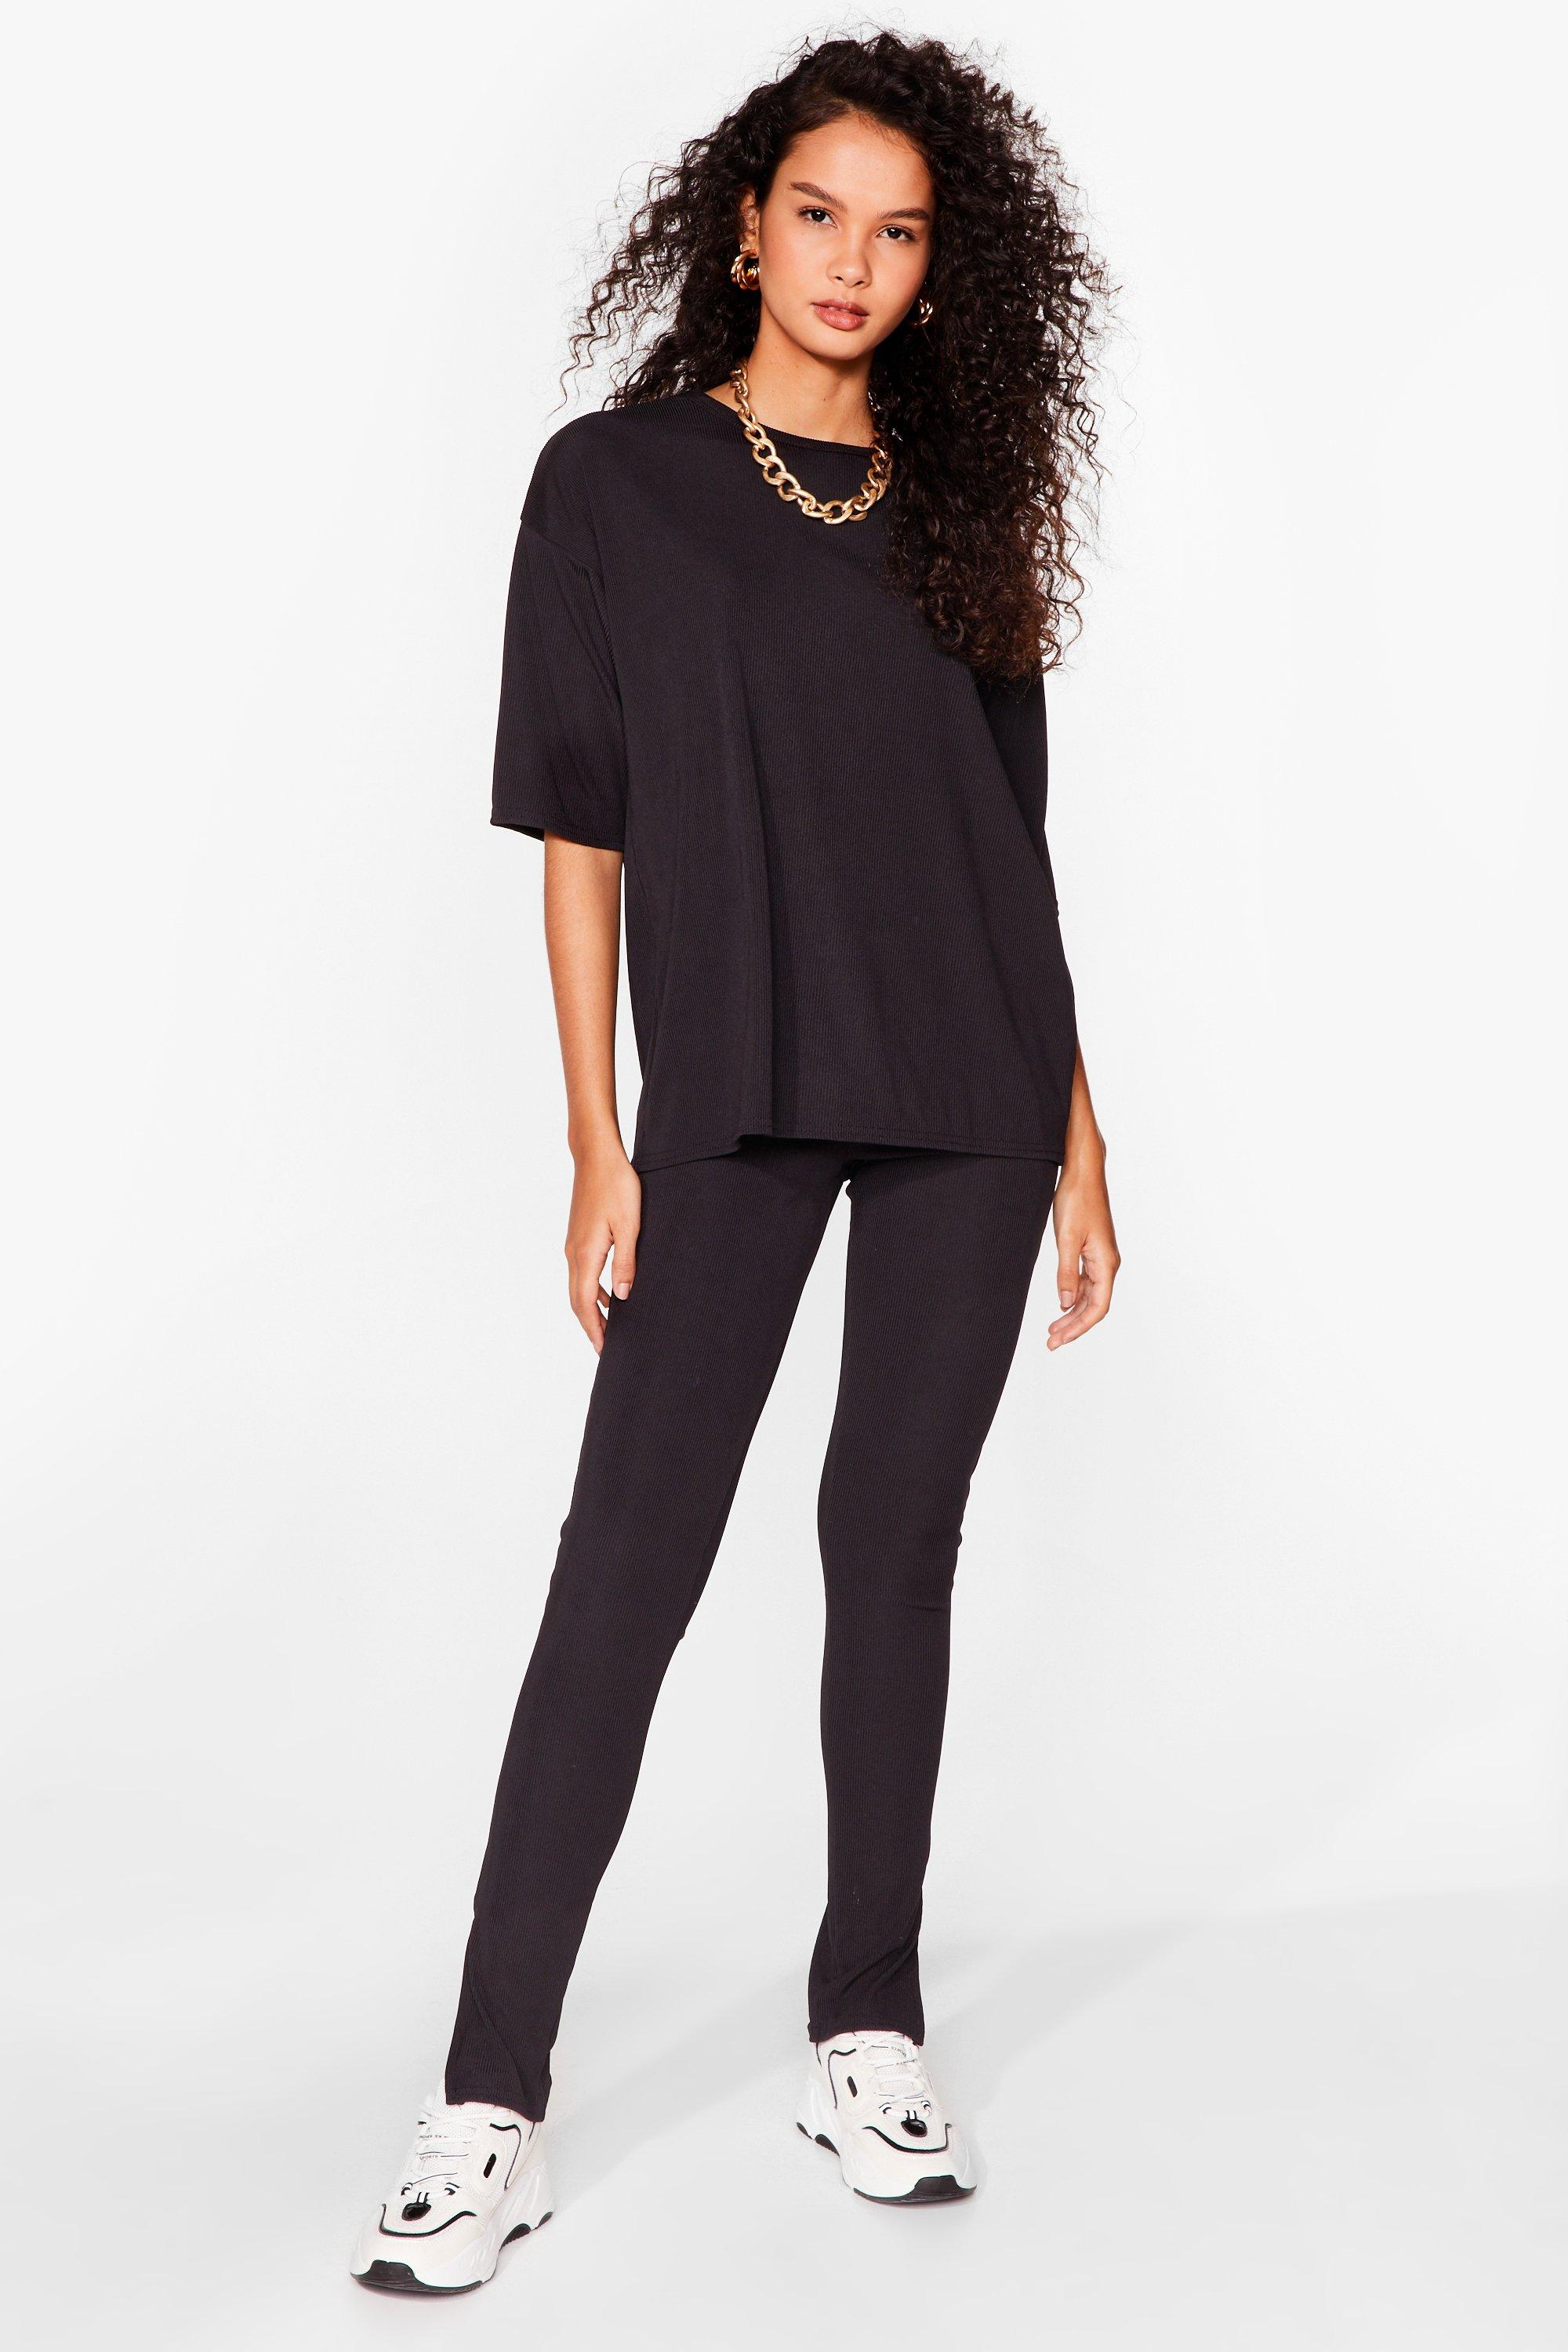 Image of Womens Take It Easy Oversized Tee and Leggings Set - Black